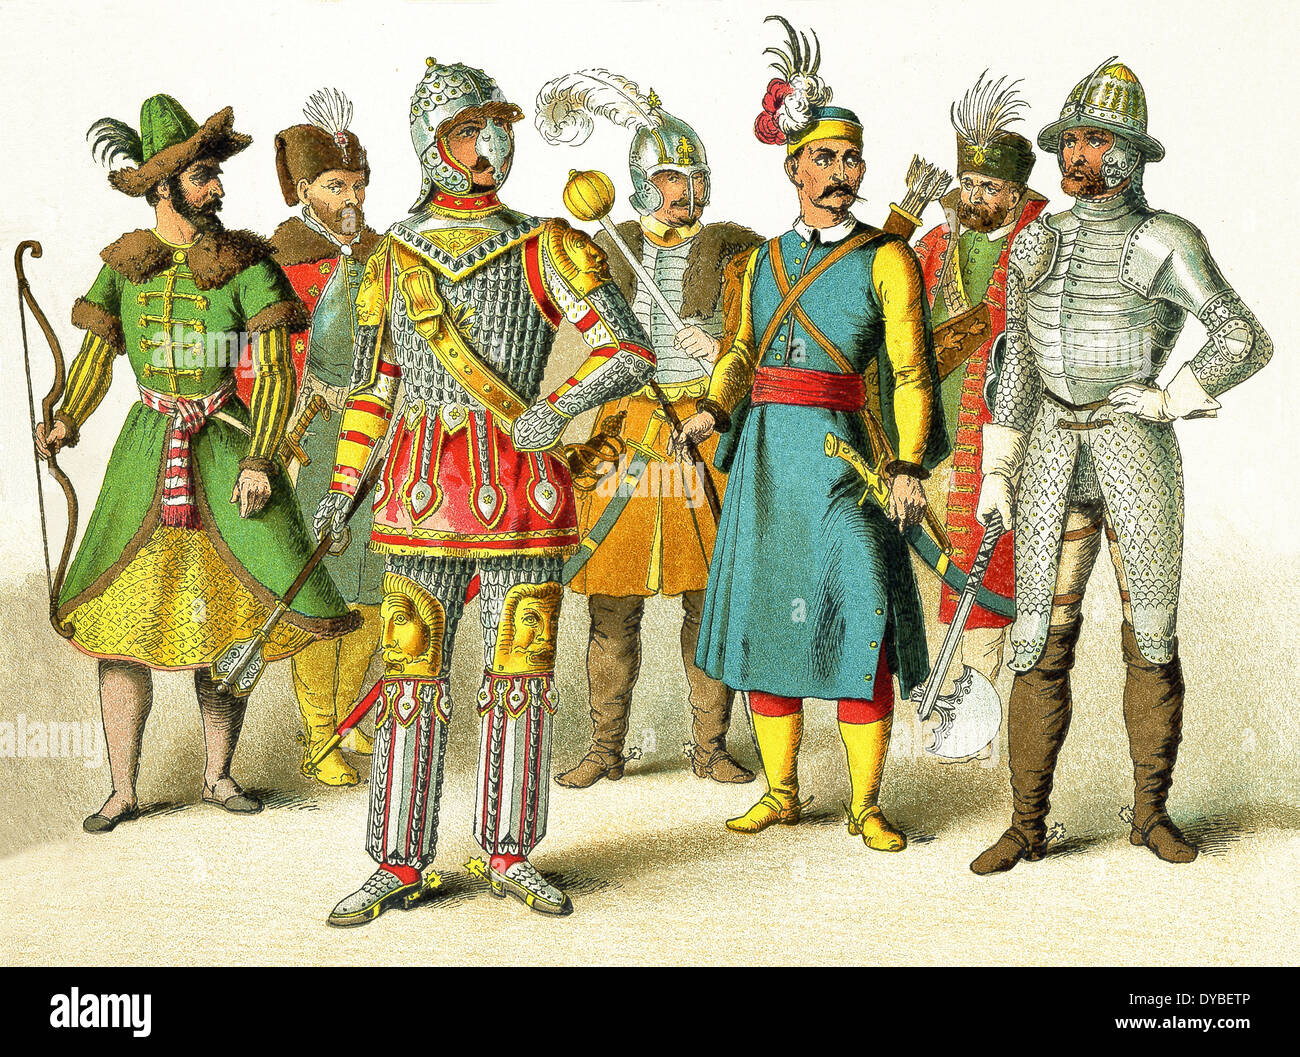 Here are Russian warrior, Polish king, Polish chief, Hungarian chief, Hungarian warrior, Hungarian prince, Hungarian warrior. - Stock Image